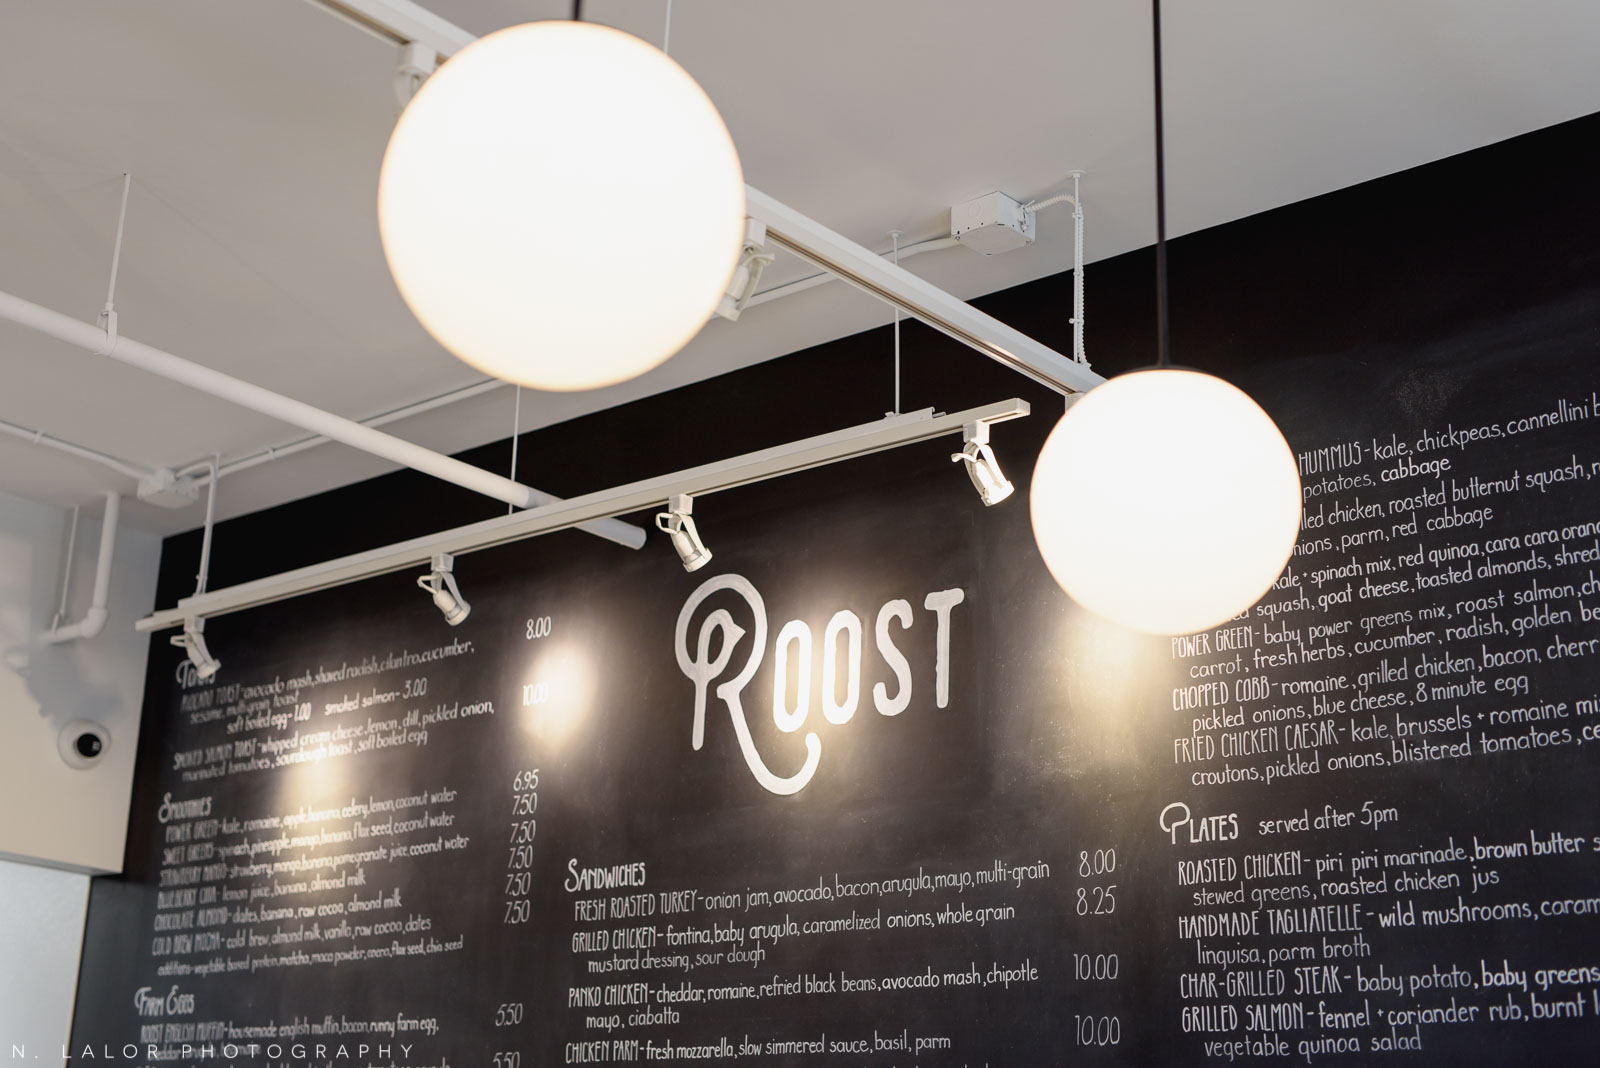 Cool light fixtures and Roost logo. Roost Darien, small business photos by N. Lalor Photography.